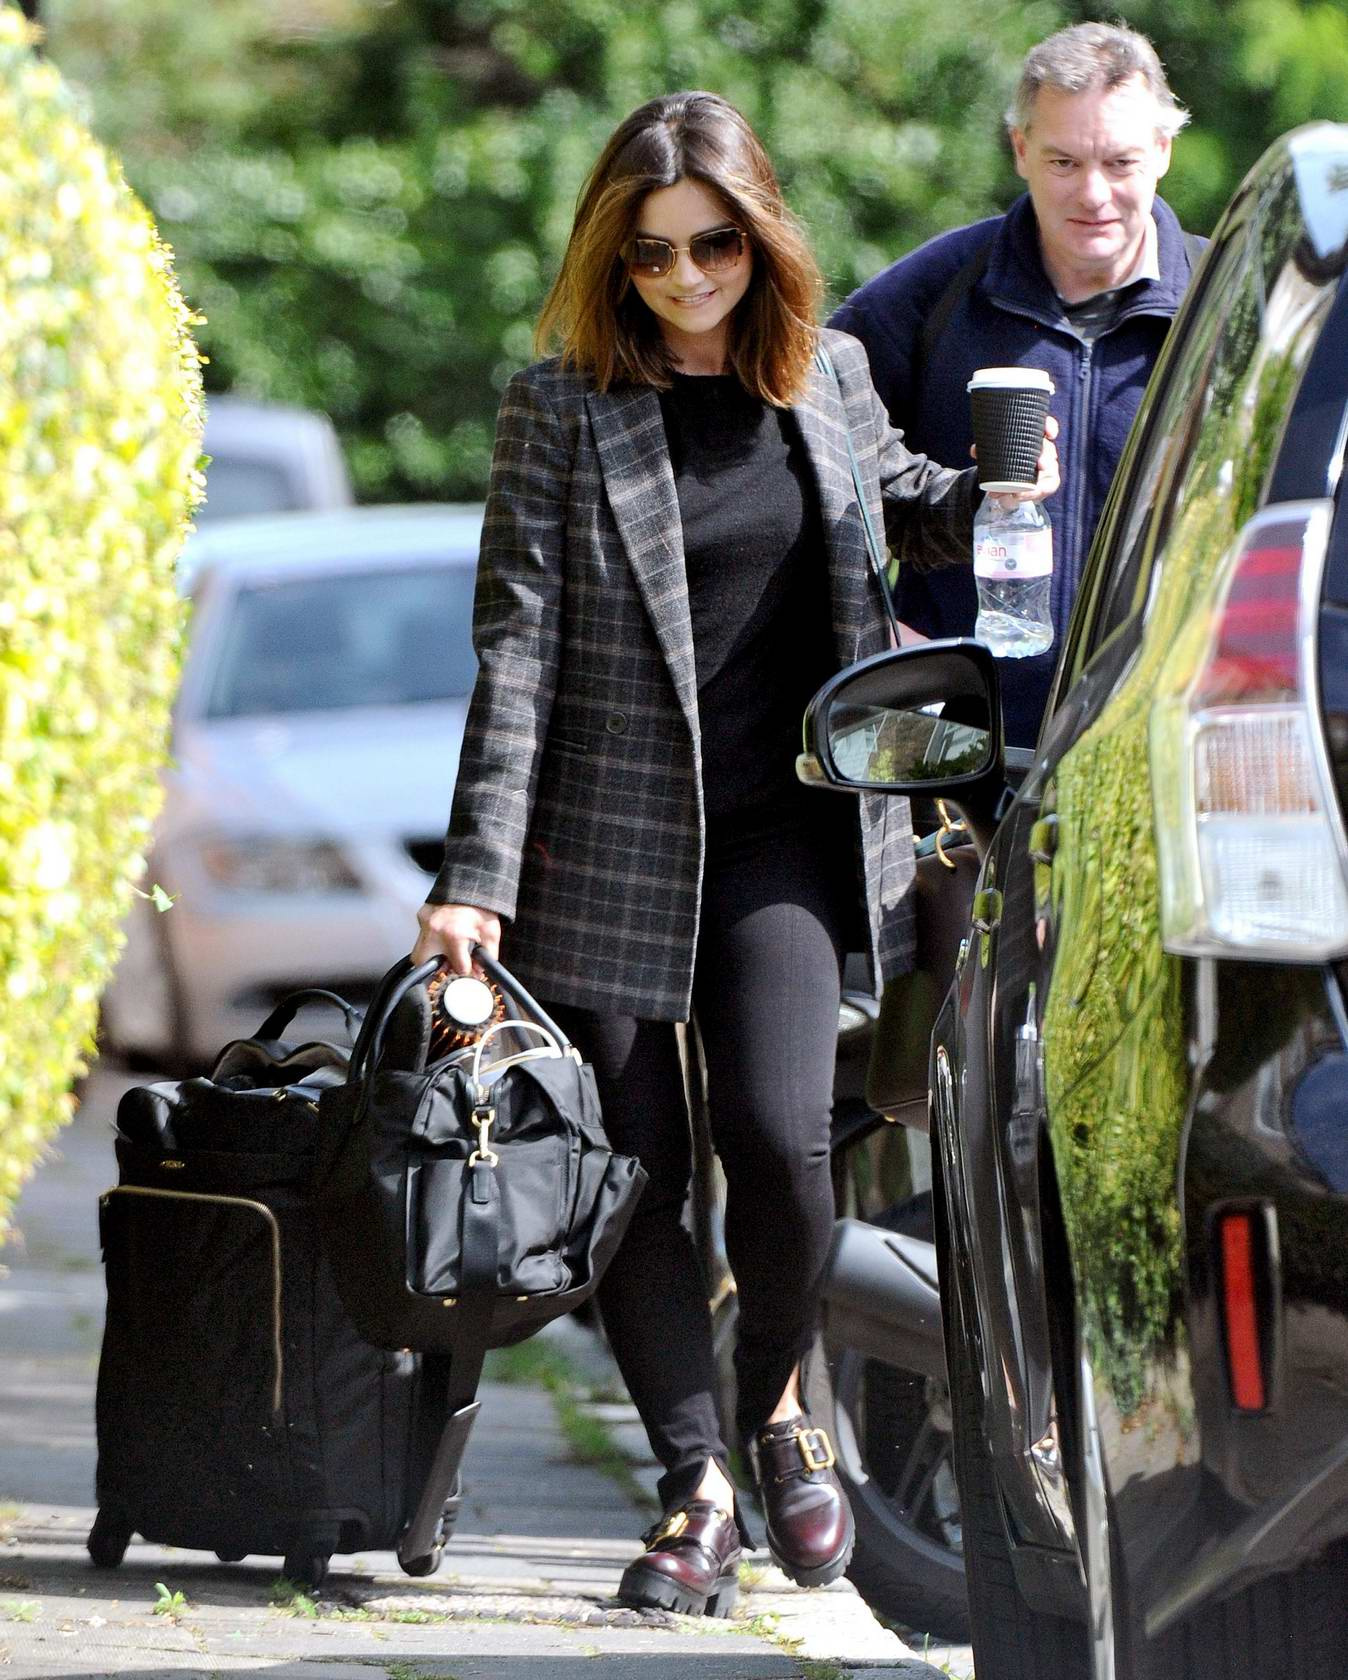 Jenna Coleman spotted while out and about in London